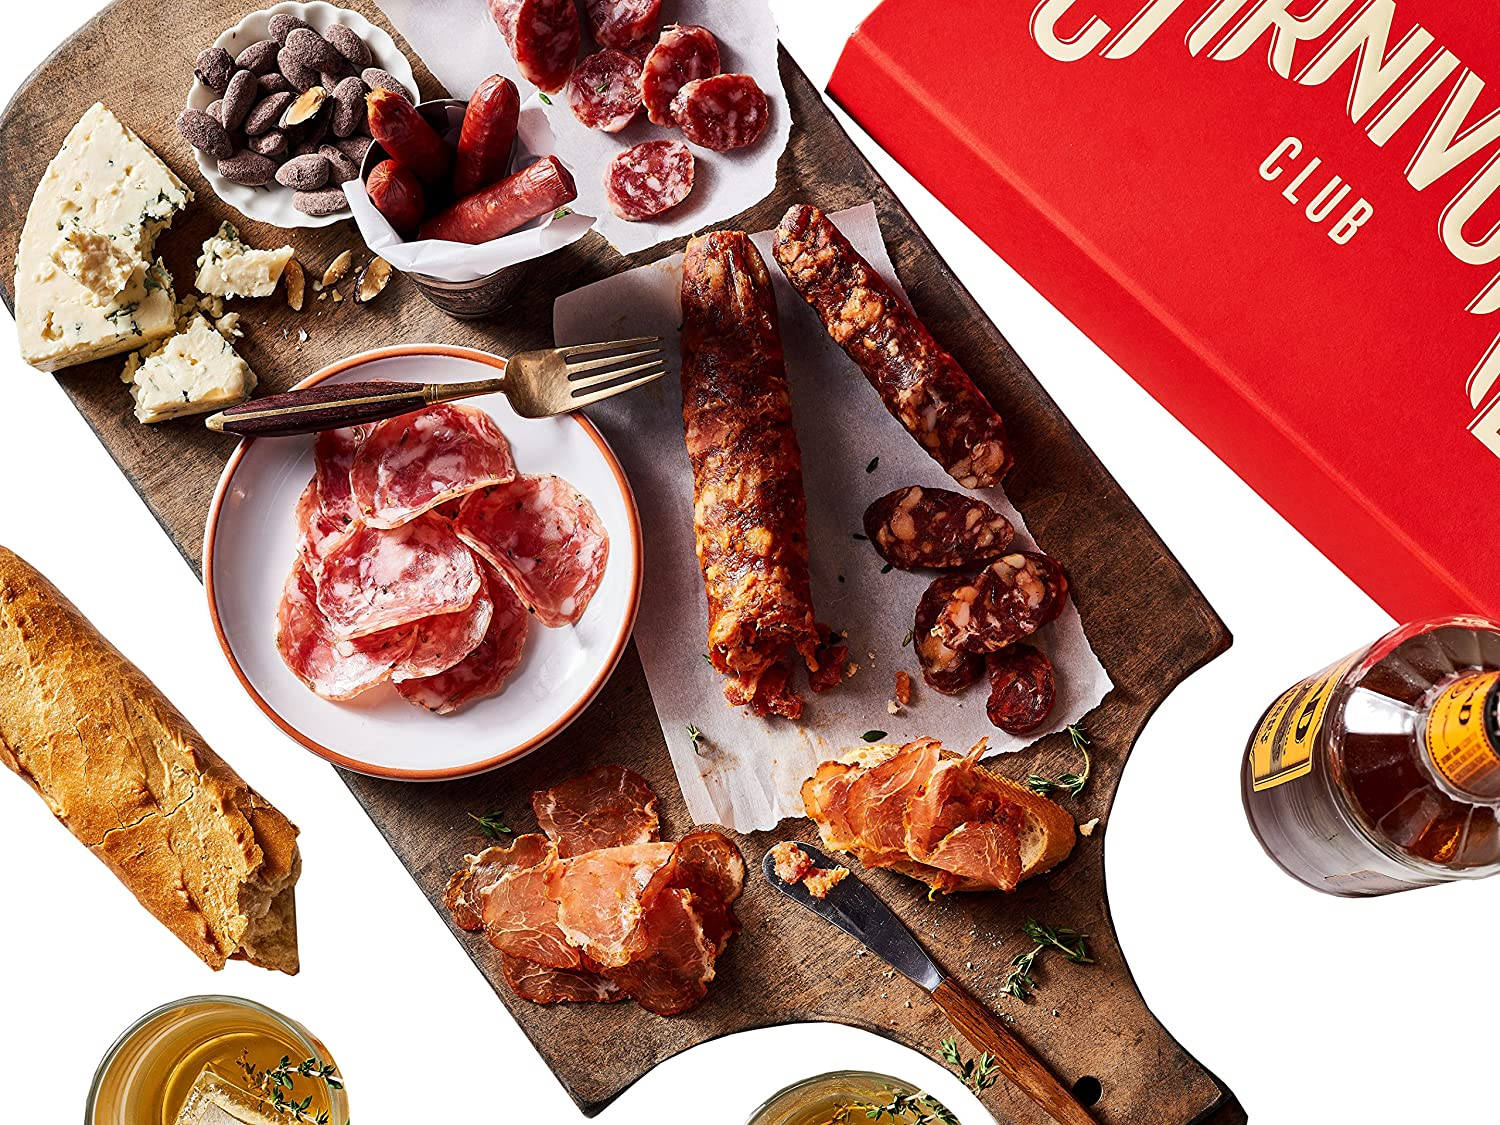 Carnivore Club Gift Box - Collection of 6 Cured Meats